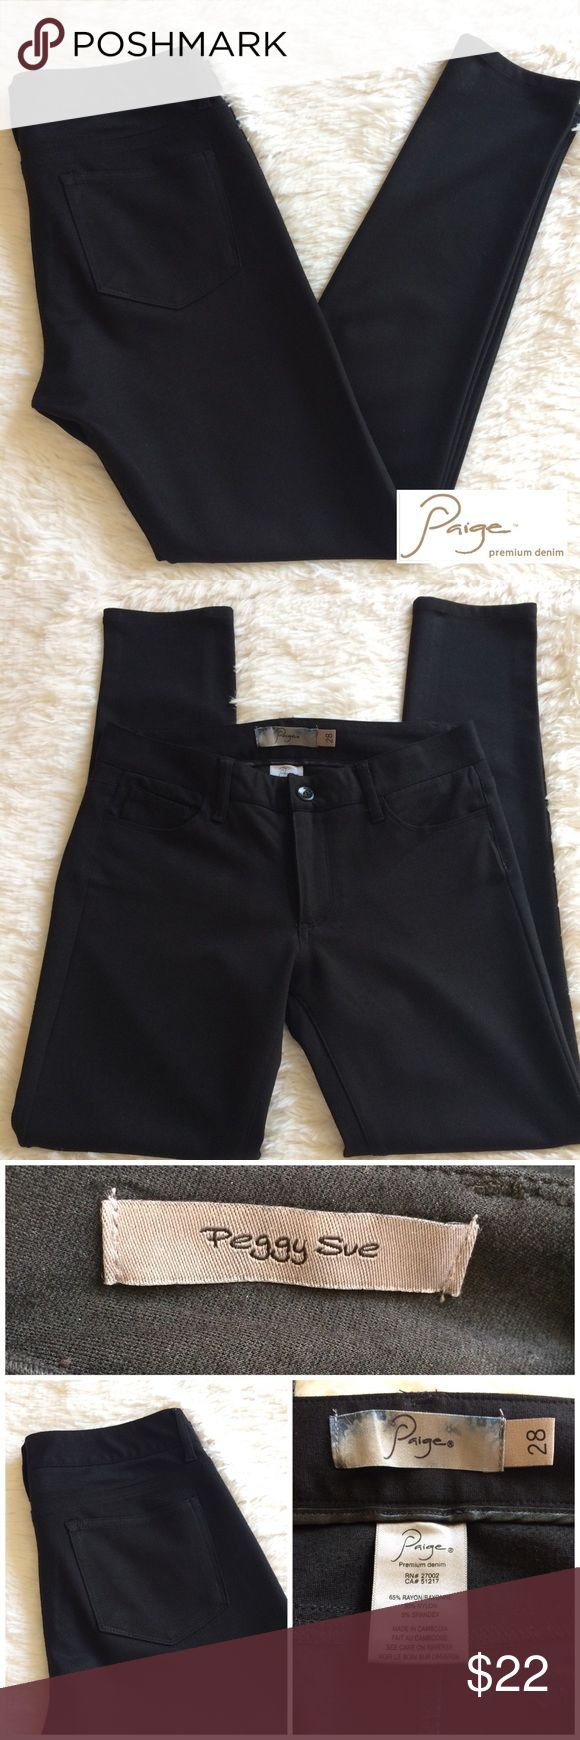 """[paige denim] 'peggy sue' stretch legging pants Stretch legging pants made by Paige Premium Denim🔹Peggy Sue (skinny) fit🔹Features 5 pockets with 5 belt loops🔹These are original length and have not been altered 🔹Approximate 29"""" inseam🔹Made of 65% rayon 30% nylon 5% spandex🔹In excellent condition with no rips, stains or tears and comes from smoke free home! 💕Create a bundle for the best value💕🚫NO TRADES🚫 Paige Jeans Pants Leggings"""